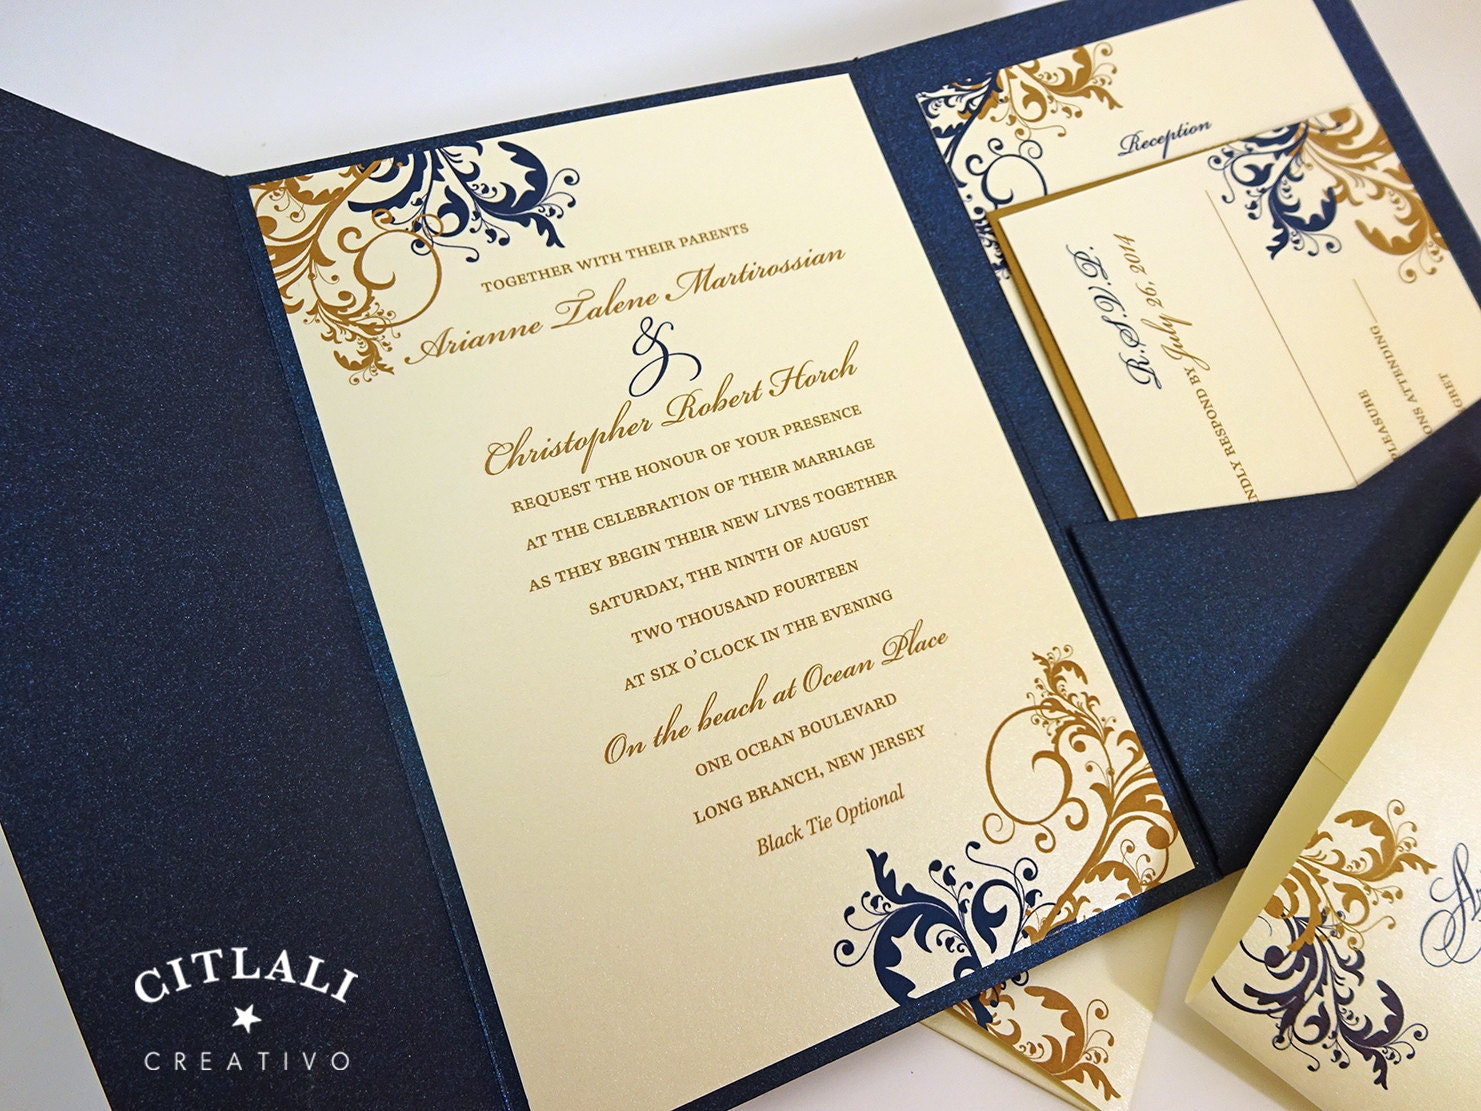 Wedding Invitation Belly Band was luxury invitation template